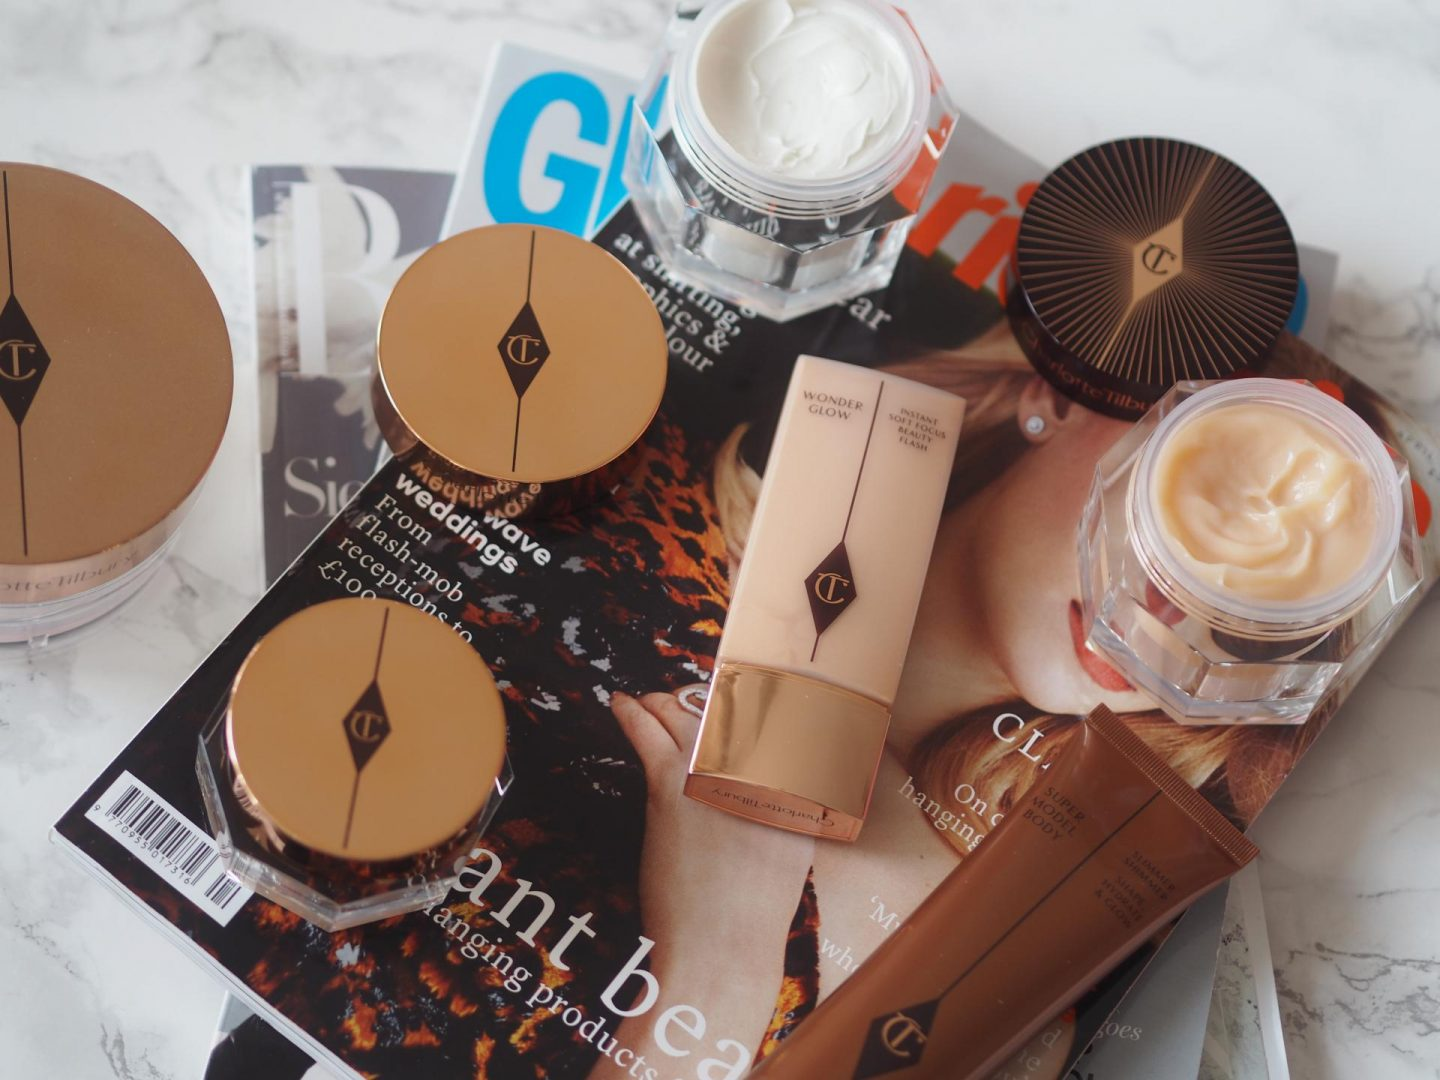 Charlotte Tilbury Make-Up and Skincare Edit and beauty haul